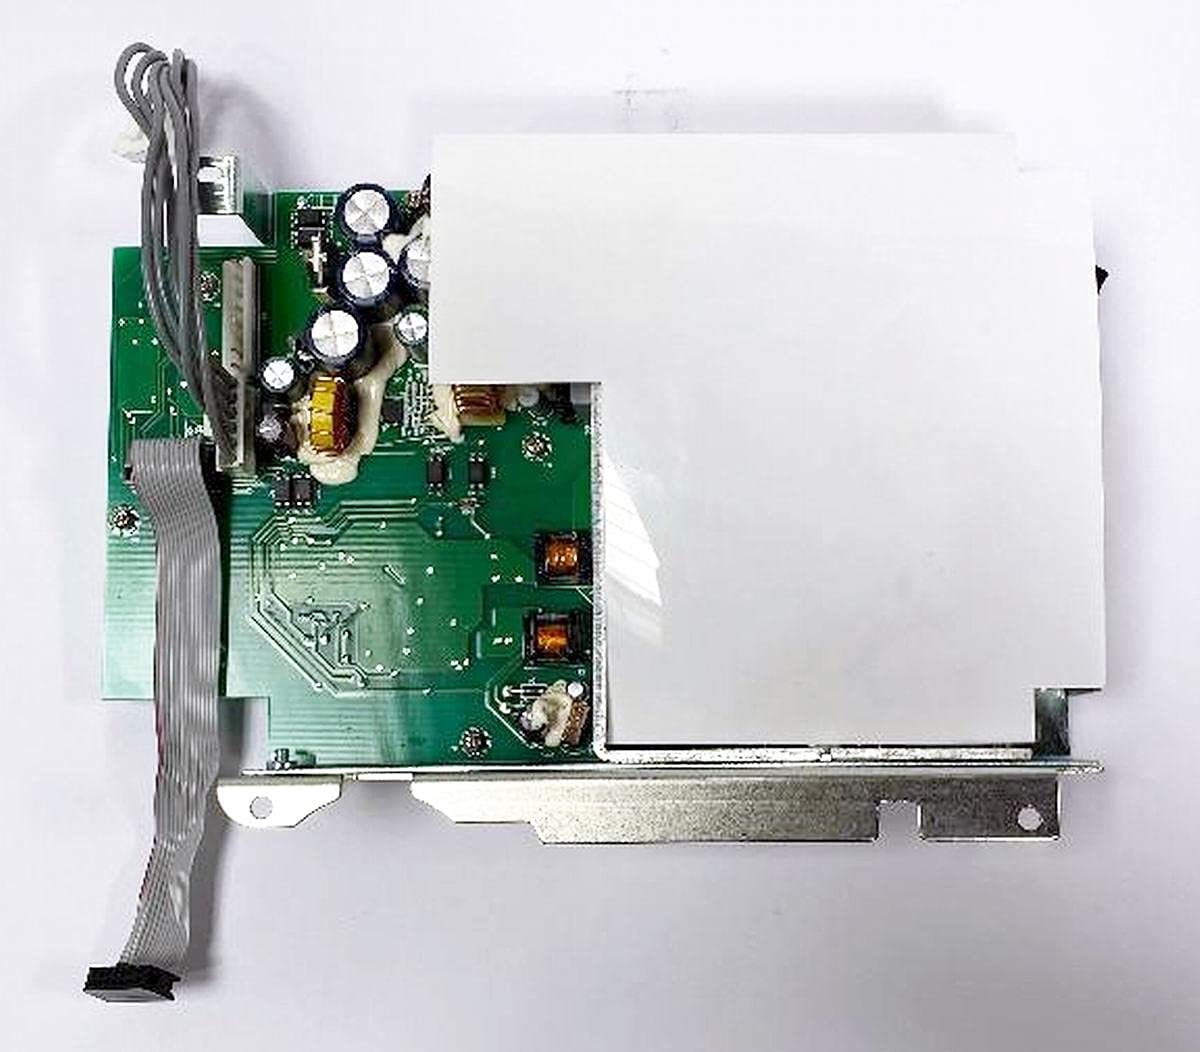 Intermec 234-065-003 Max 81% OFF Power Supply Board Direct sale of manufacturer Assembly for Electronics